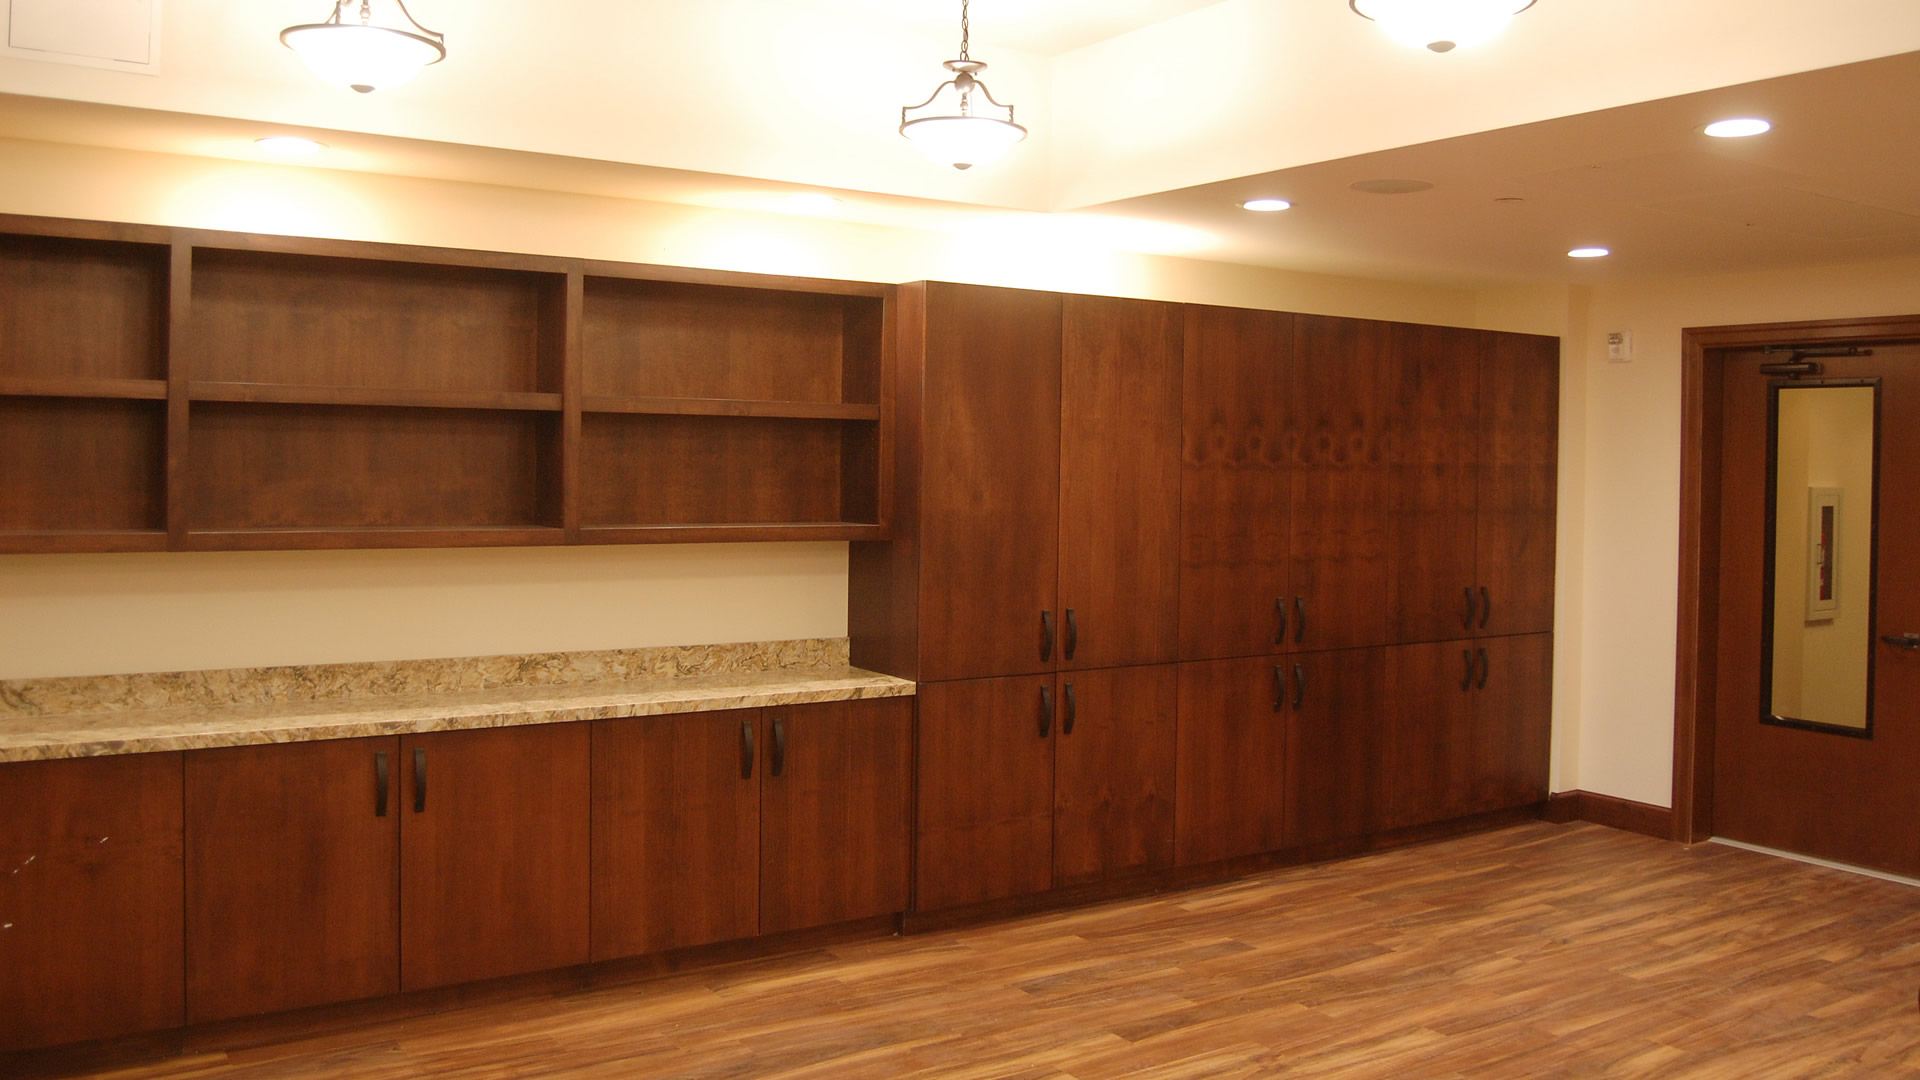 Casework for cabinets